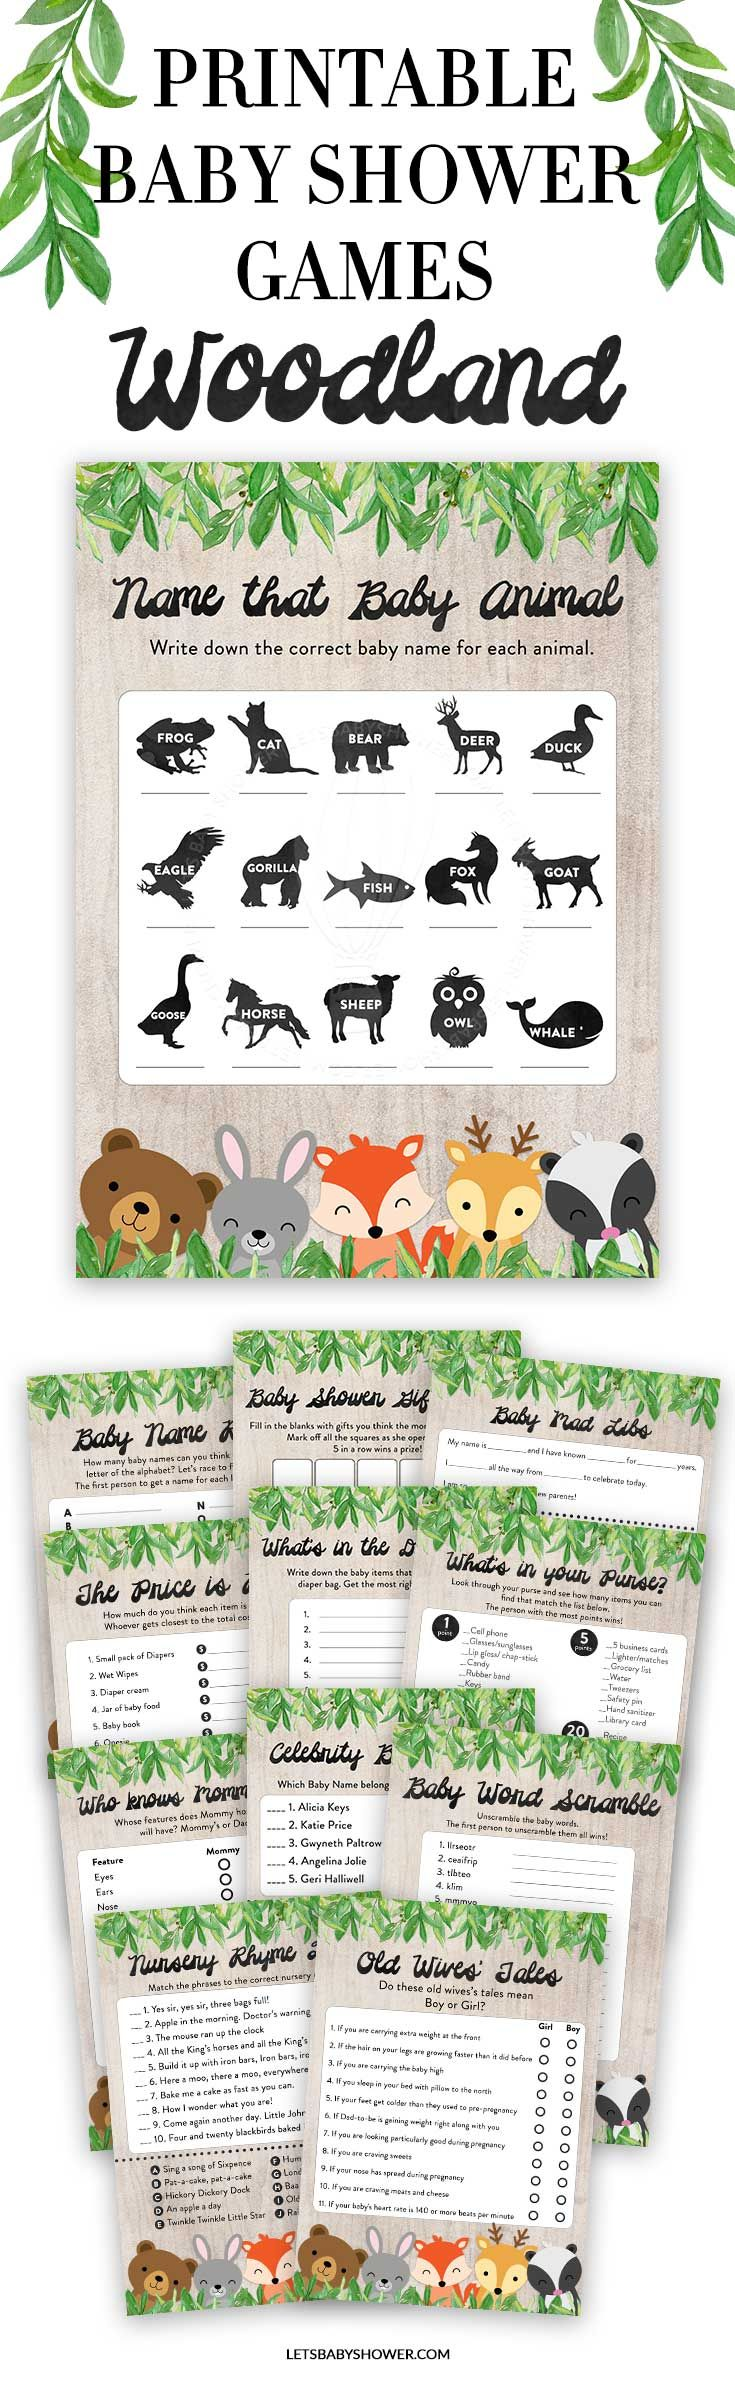 Looking for a Baby Shower theme for boys? Here's one of the baby shower ideas your guests will surely enjoy. Printable Woodland Baby Shower Games for Boys